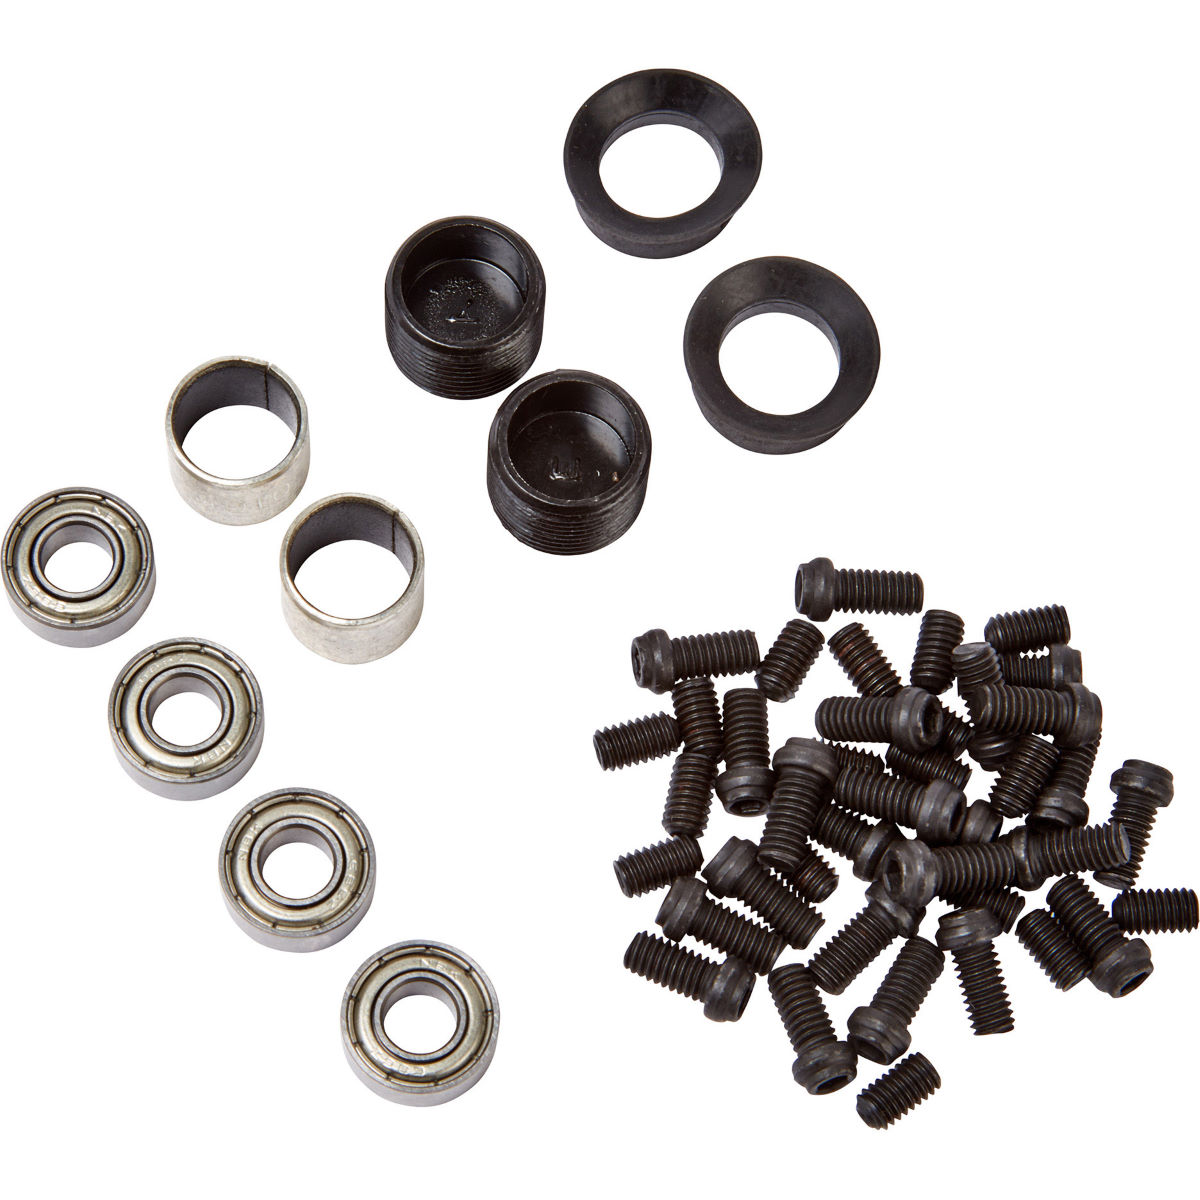 Nukeproof Urchin Rebuild Kit - One Size Neutral  Pedal Spares